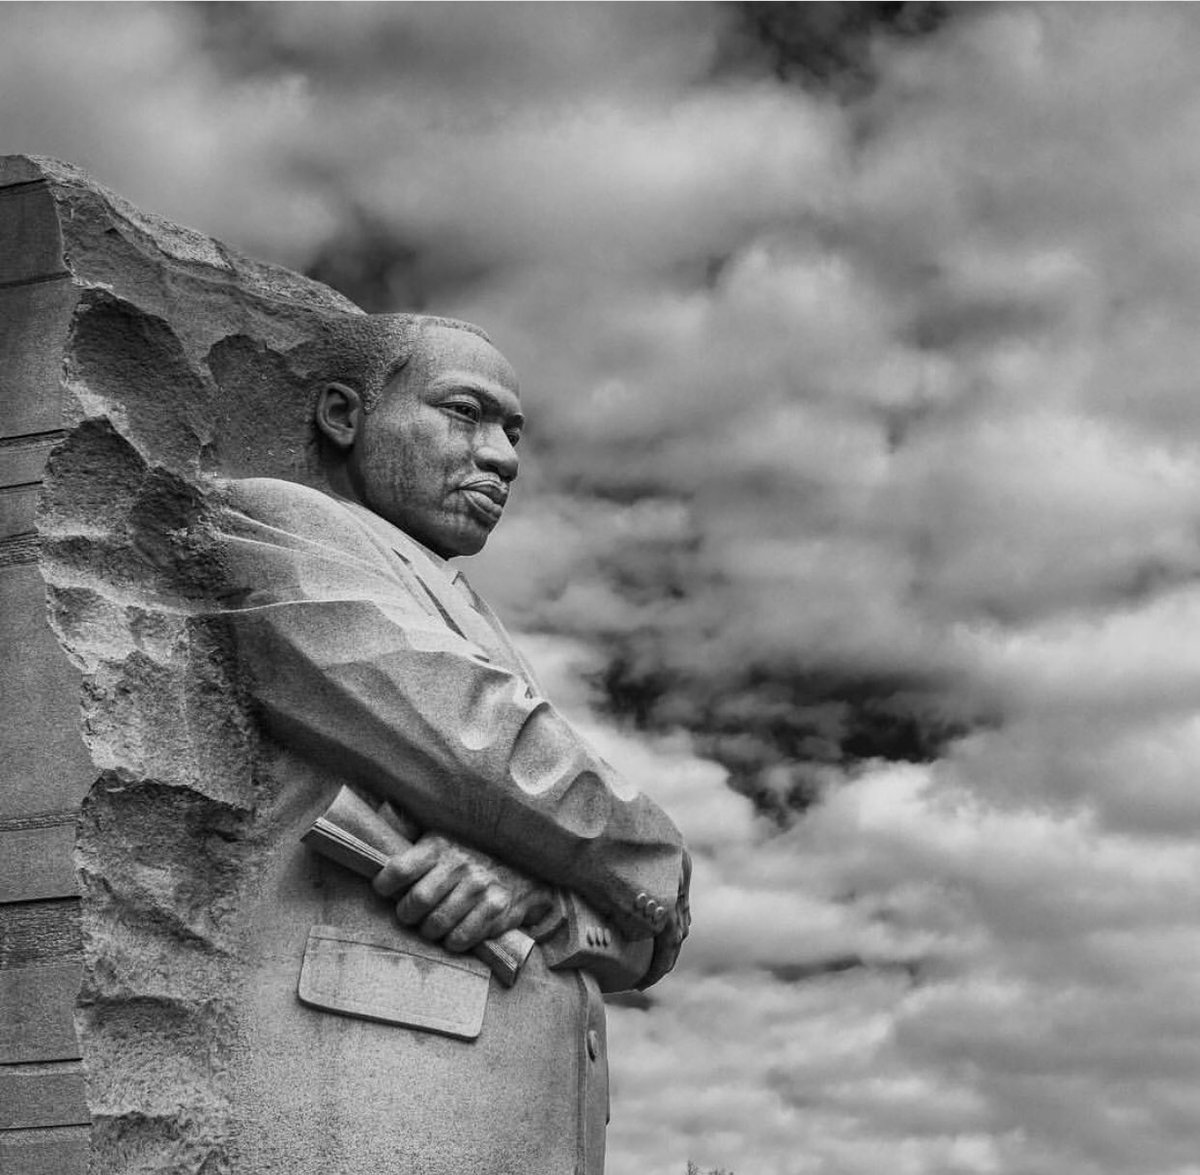 "#MLKDay: ""I have decided to stick with love. Hate is too great a burden to bear."" - Dr. Martin Luther King Jr.  📸: News4's Ambrose Vurnis.  See photos of MLK Jr.'s legacy here: https://t.co/gFCvYHzGkH"